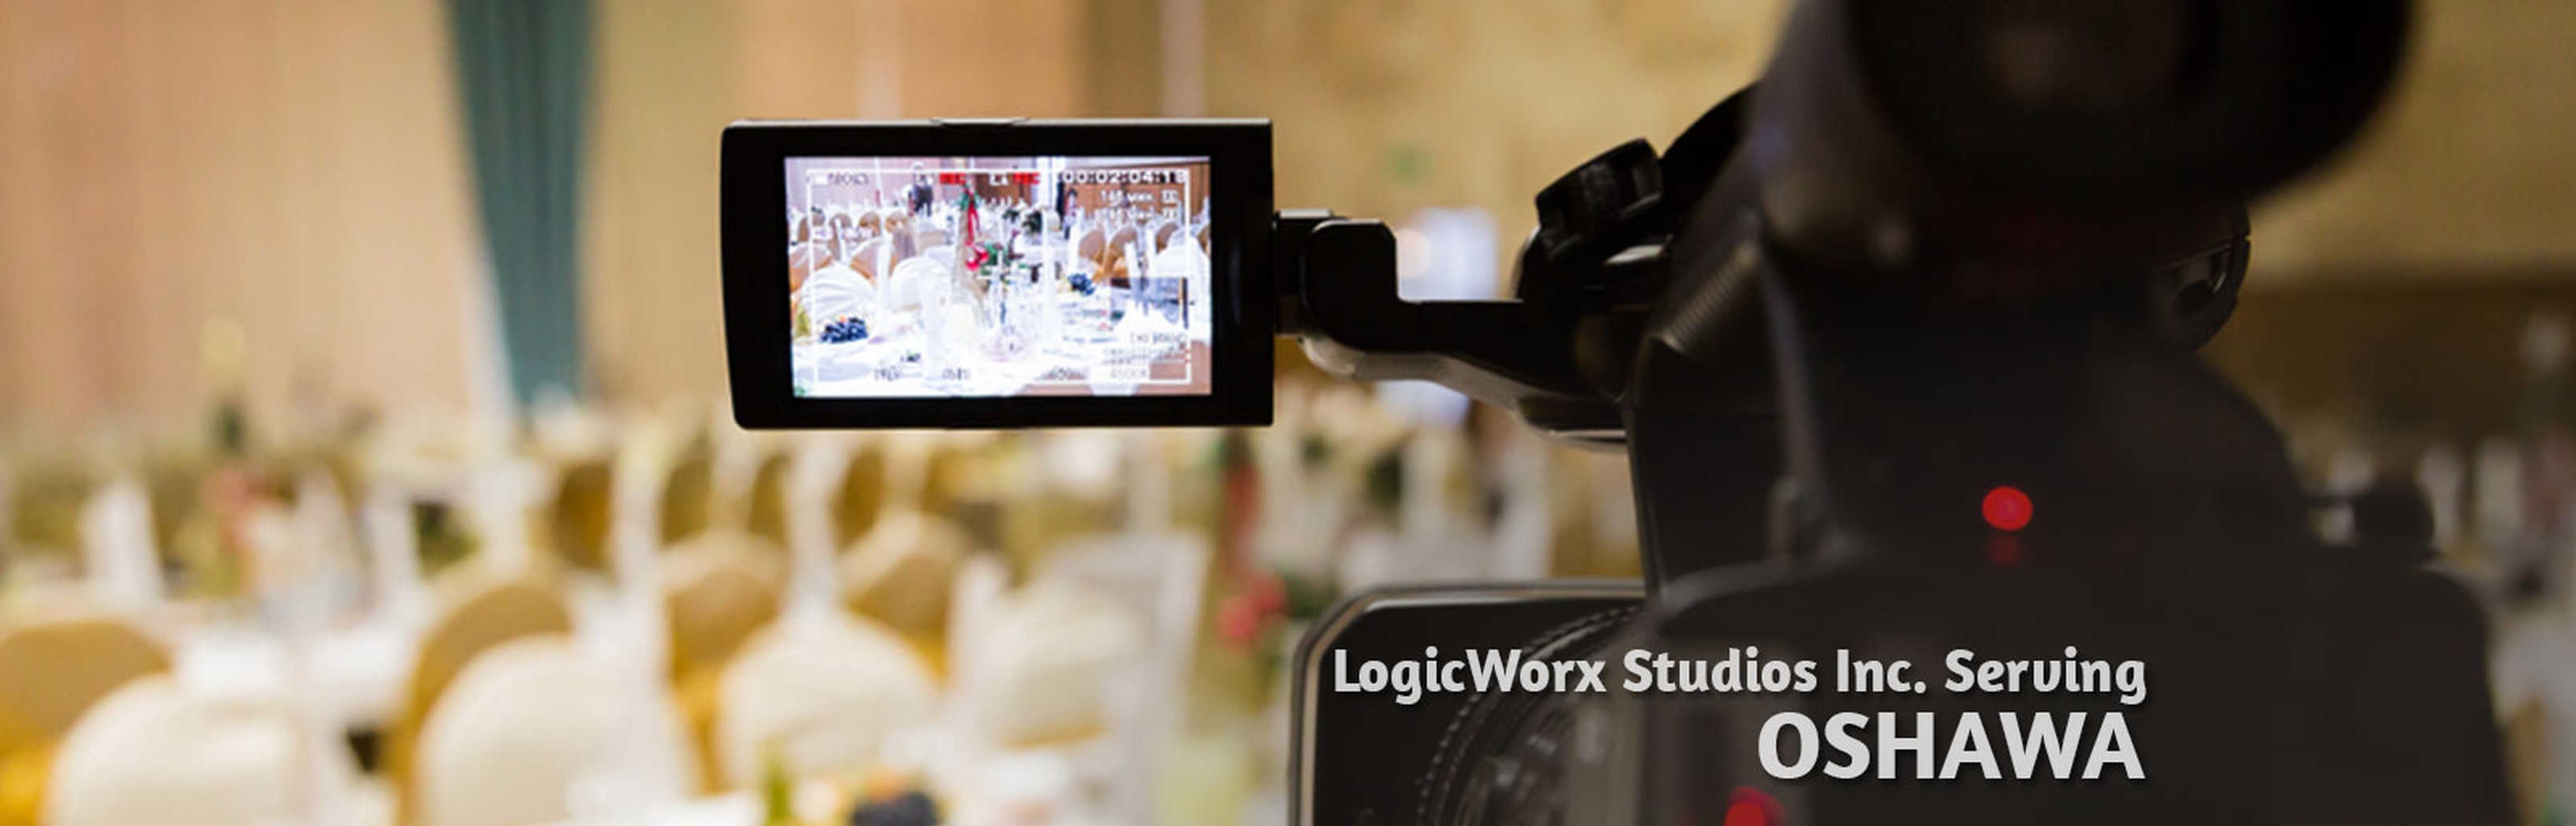 LogicWorx Studios Inc. Serving Oshawa